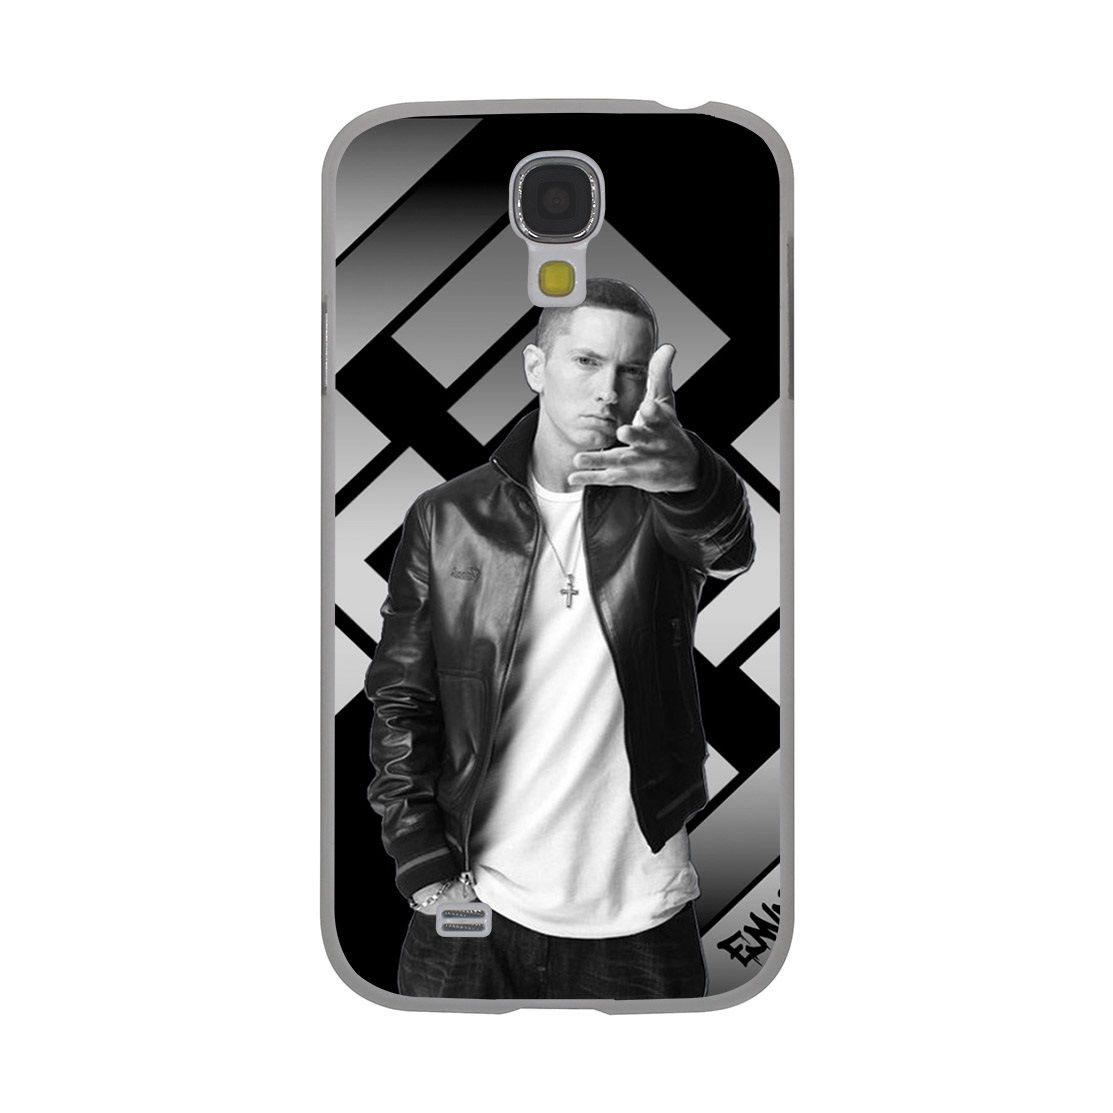 Eminem clothes and accessories in stock from with world